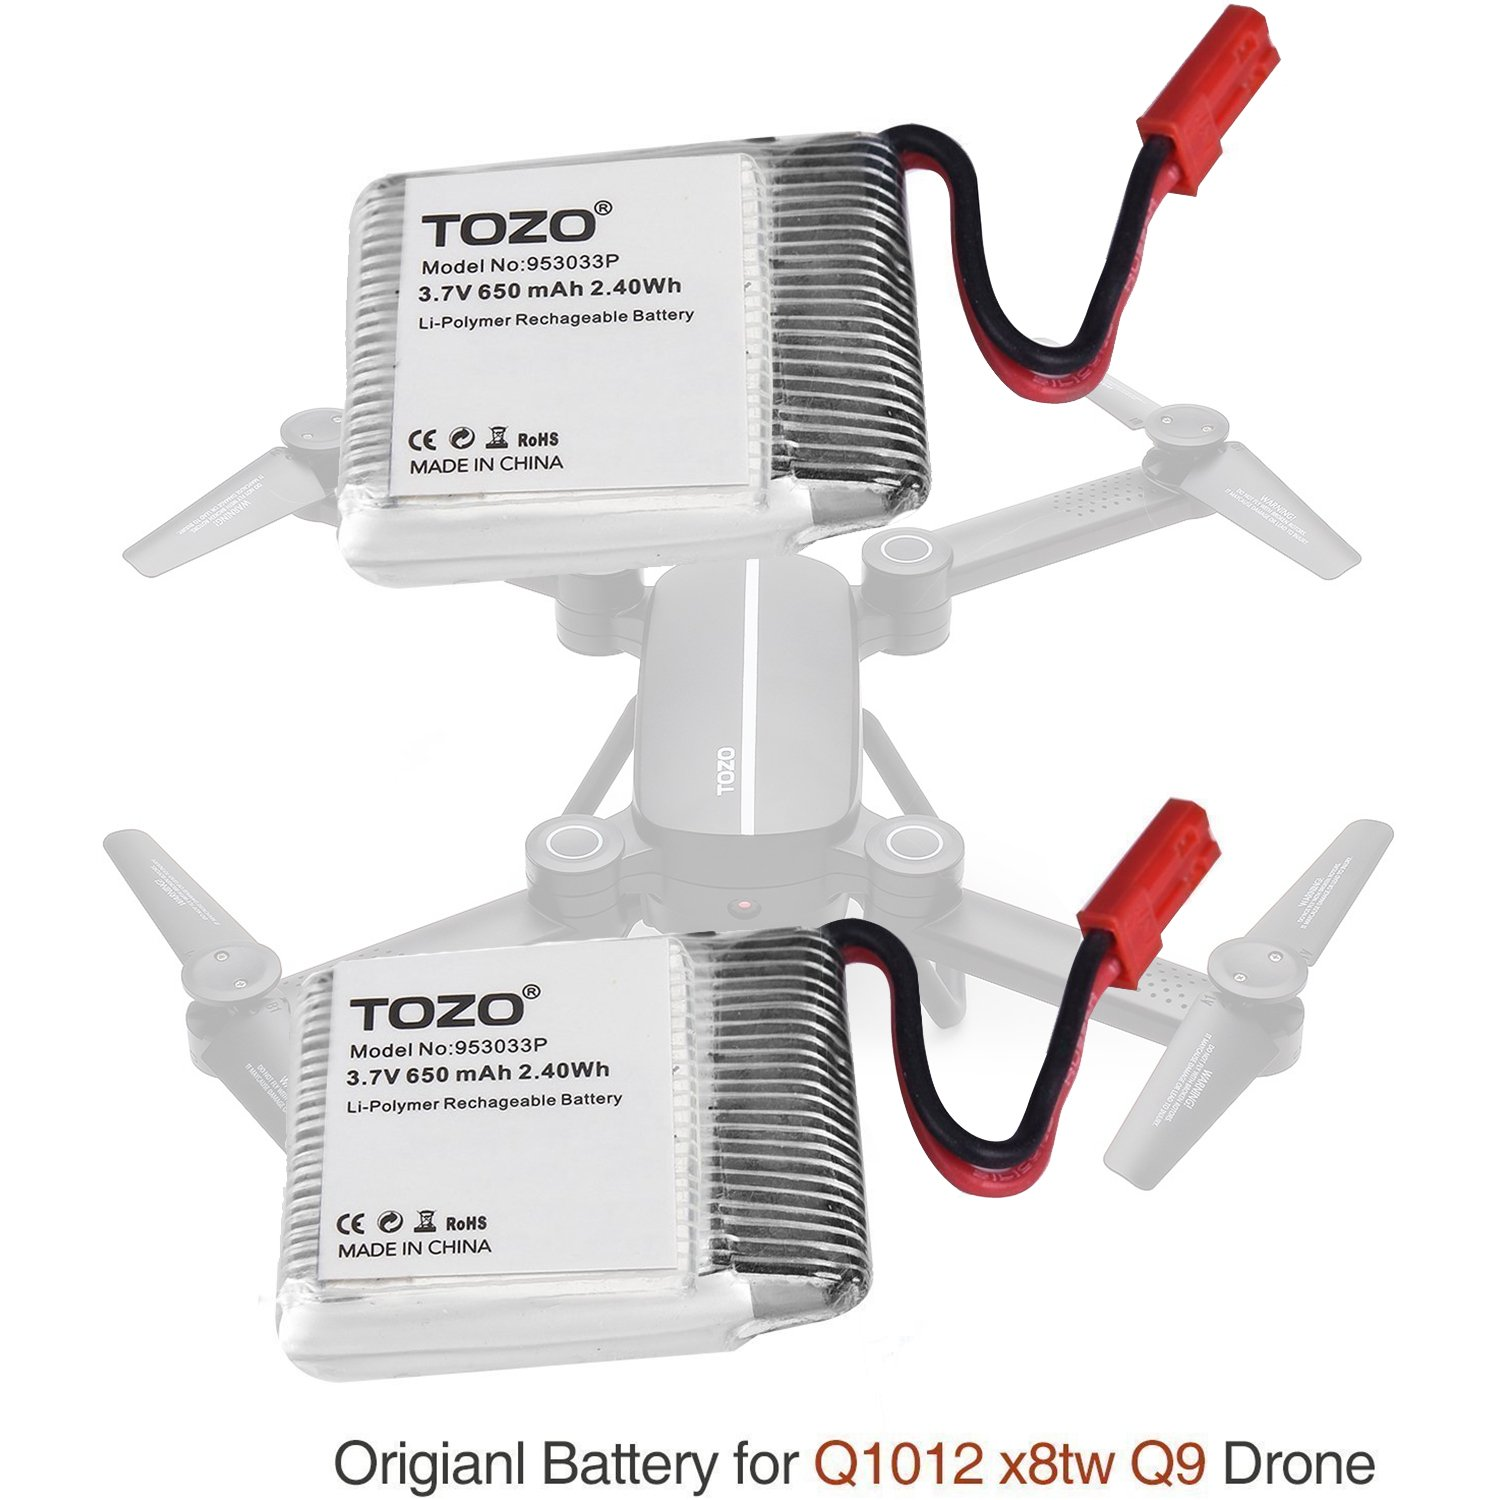 TOZO reg; Lithium battery for Q1012 X8tw Drone RC Quadcopter ...